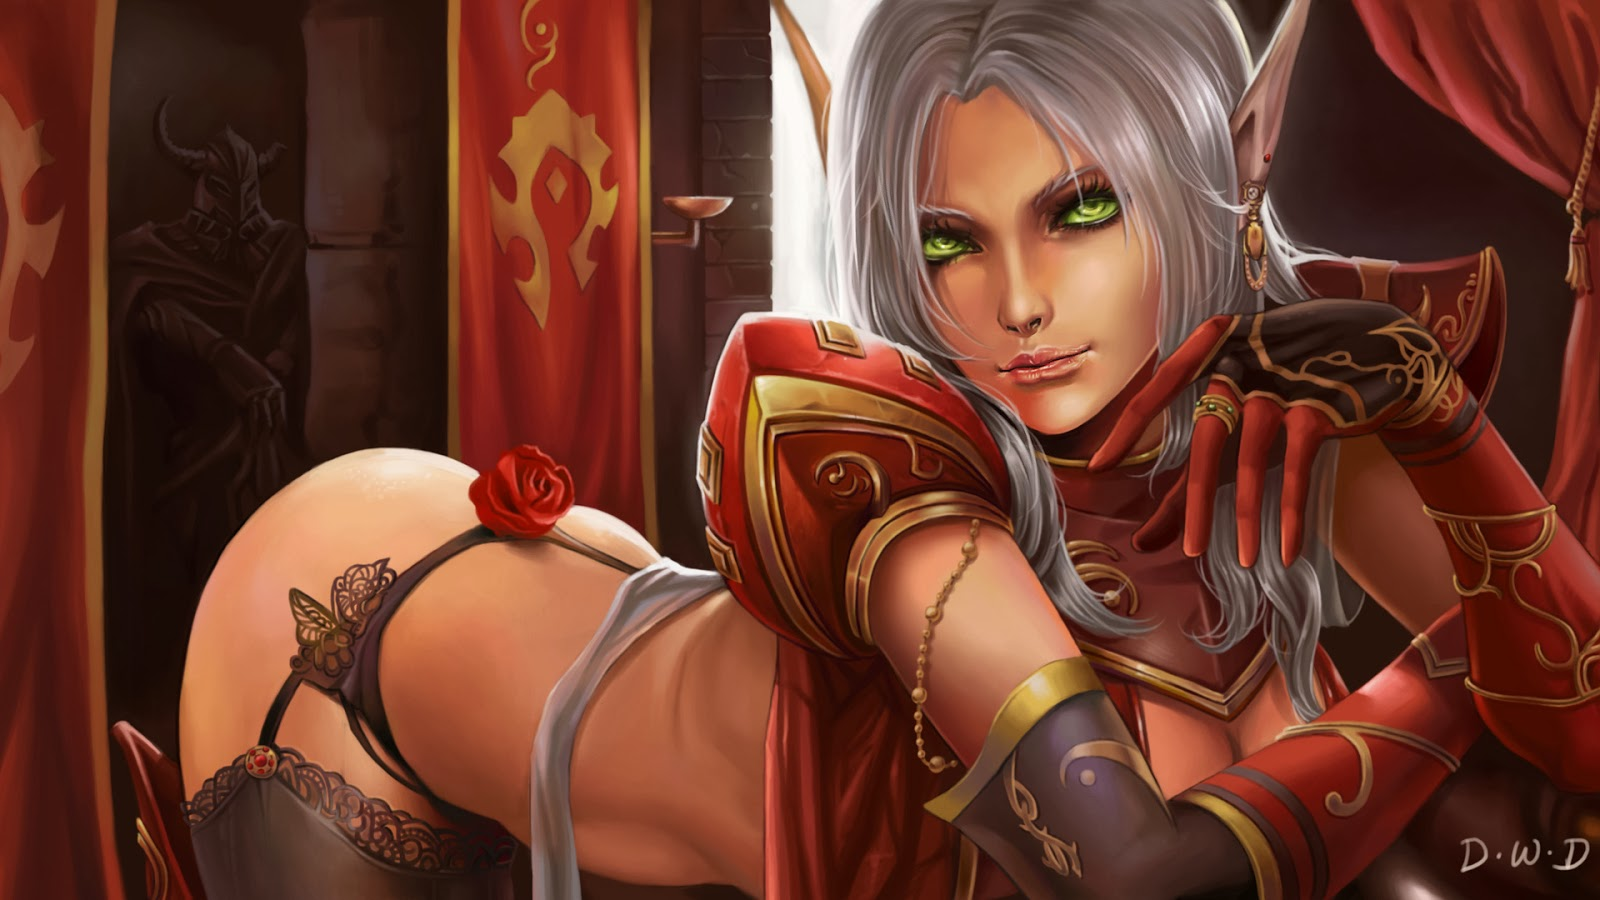 Hearthstone rogue hentai erotica pictures